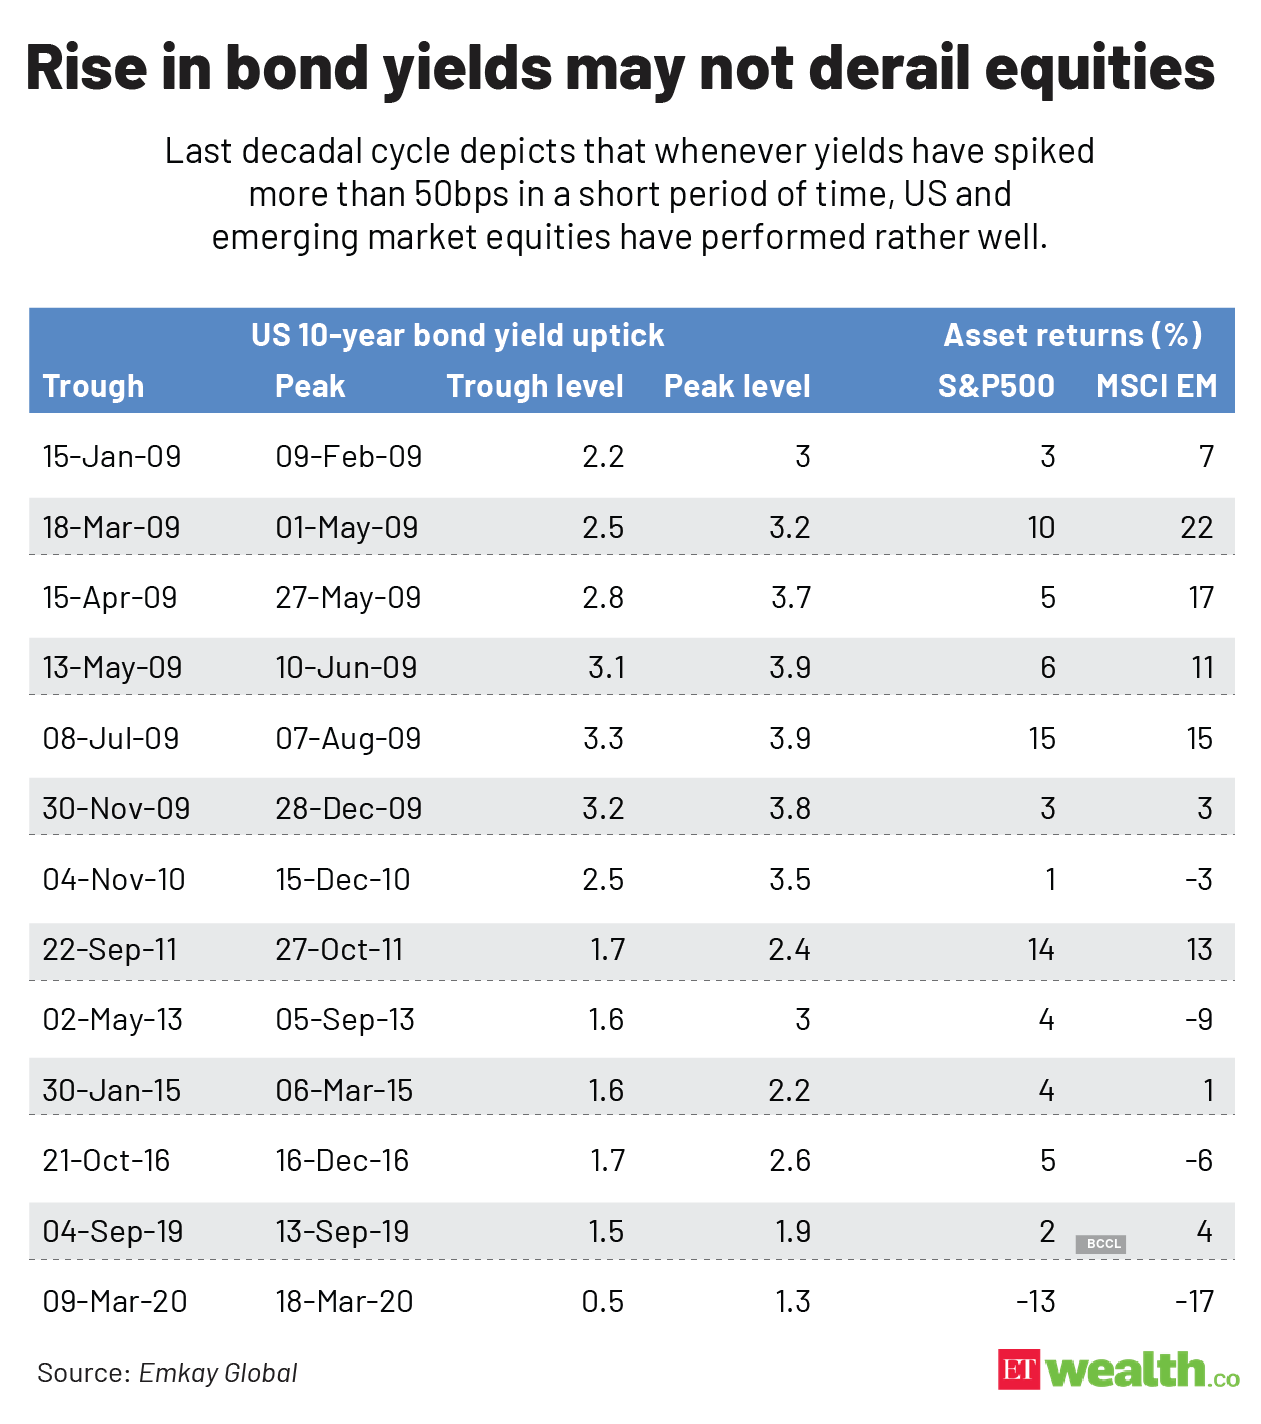 Rise in bond yields may not derail equities@2x (1)